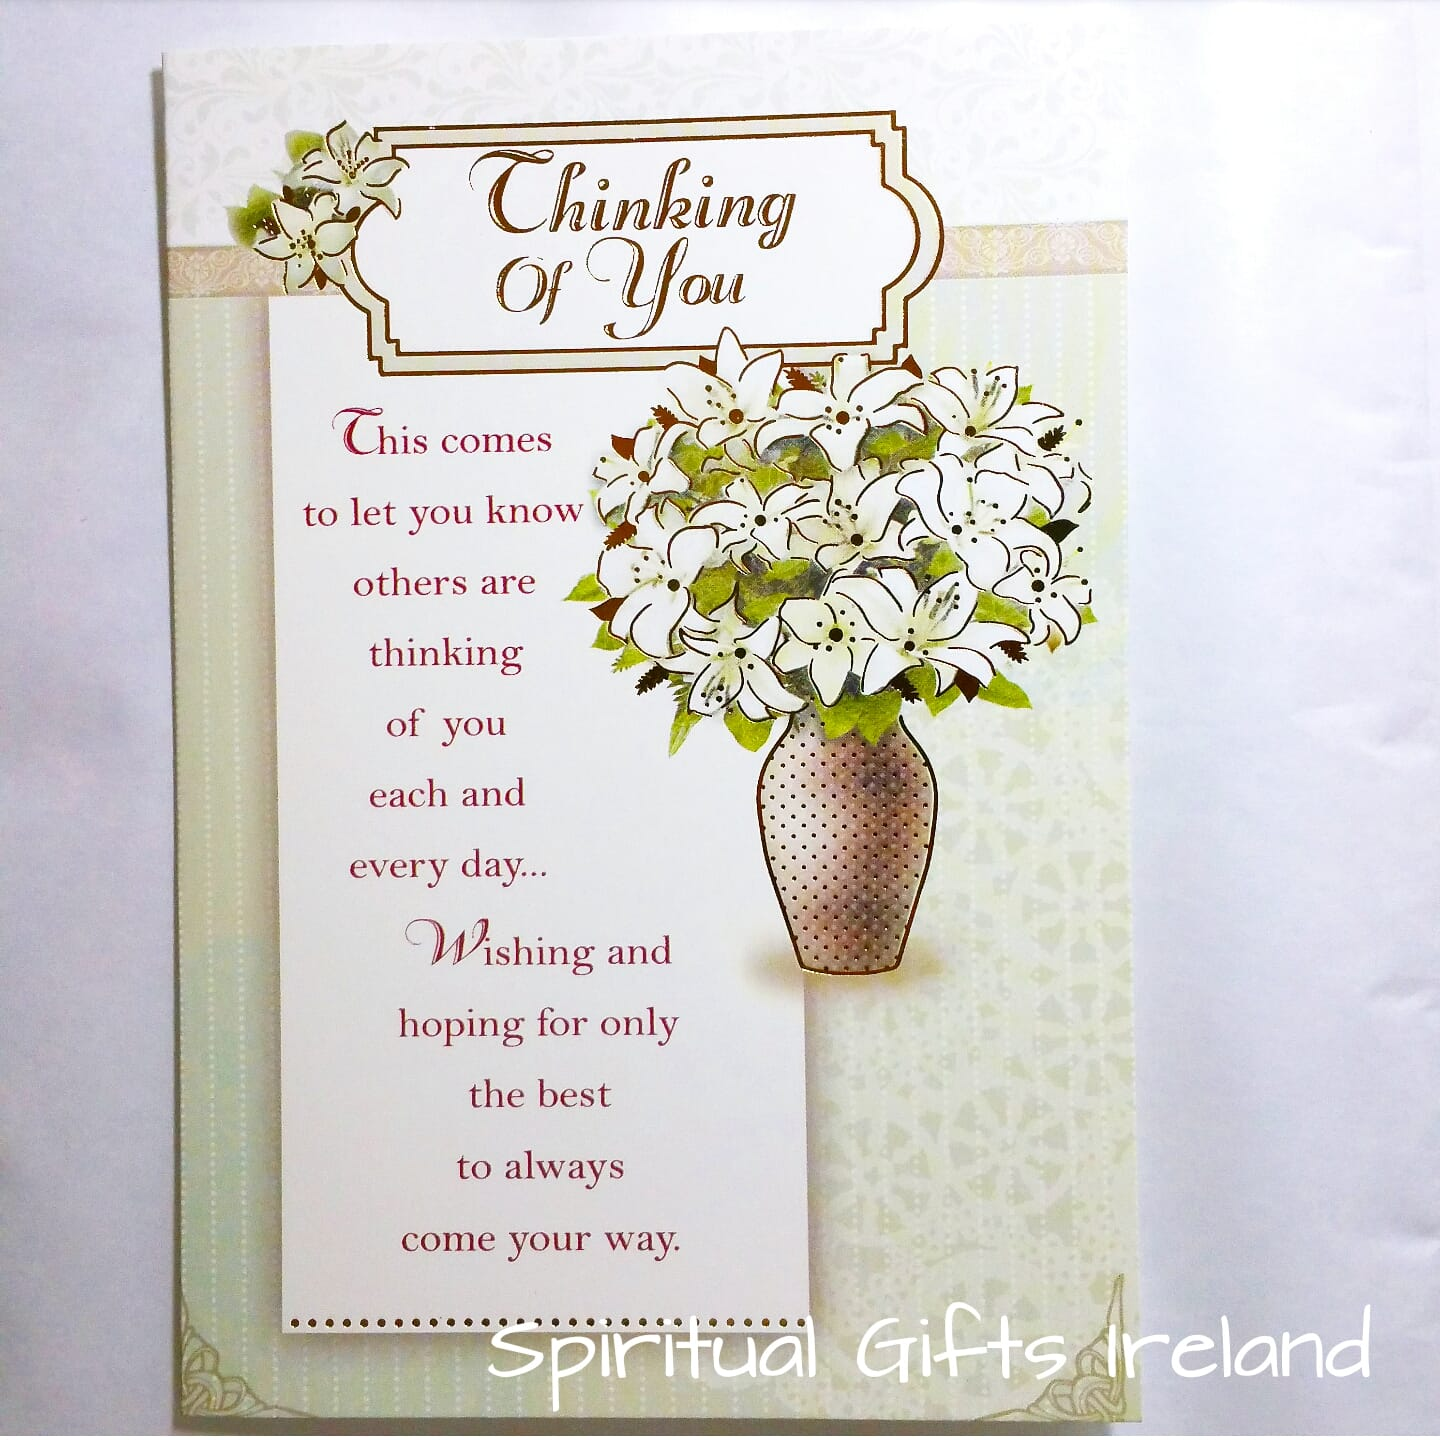 Thinking Of You Inspirational Greeting Card Spiritual Gifts Ireland